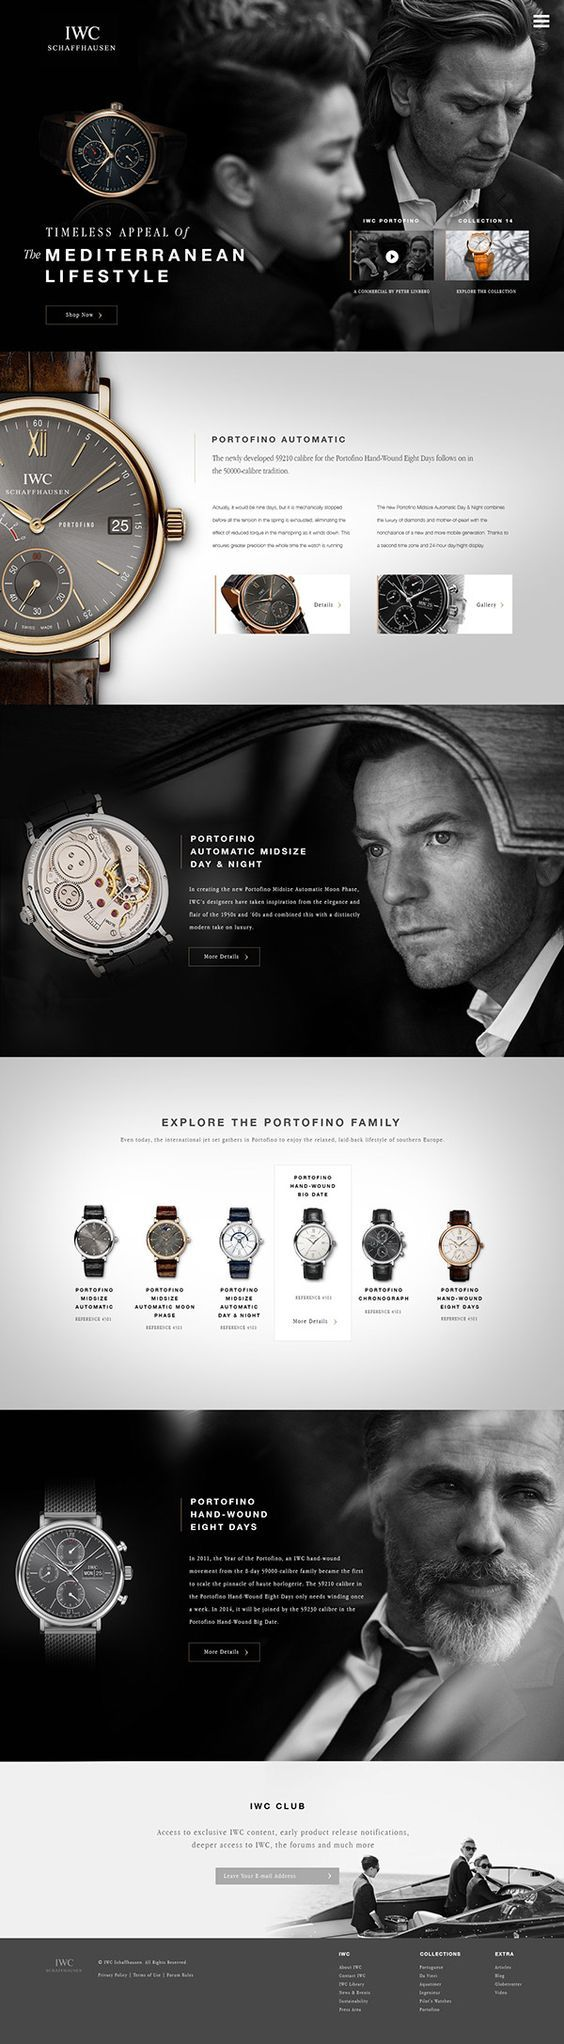 IWC Portofino on Web Design Served: